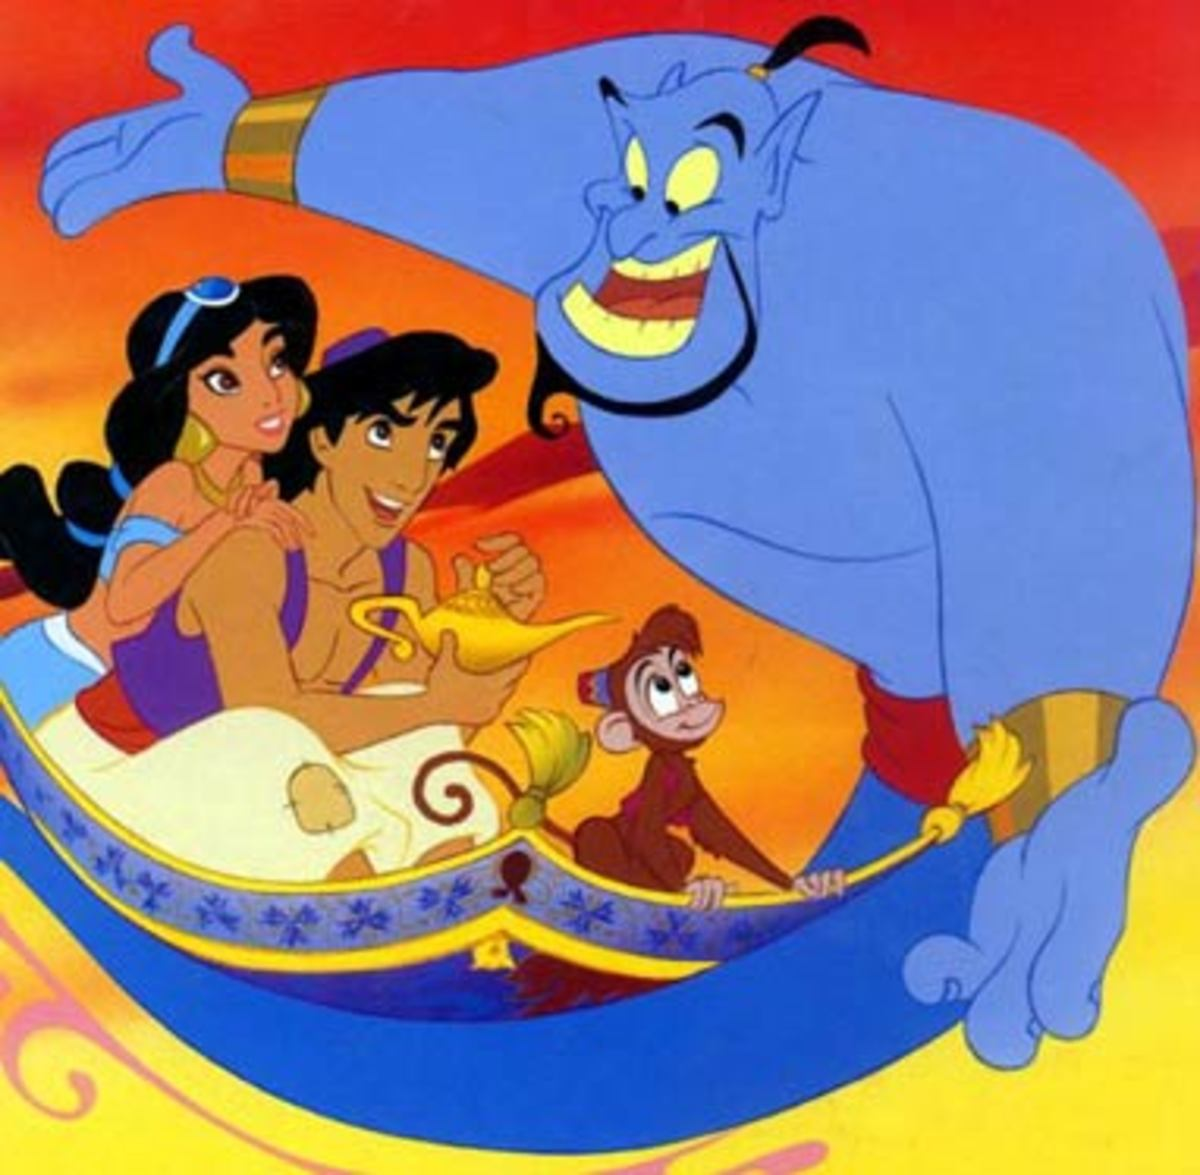 Gender Role Reversal in Disney's Aladdin